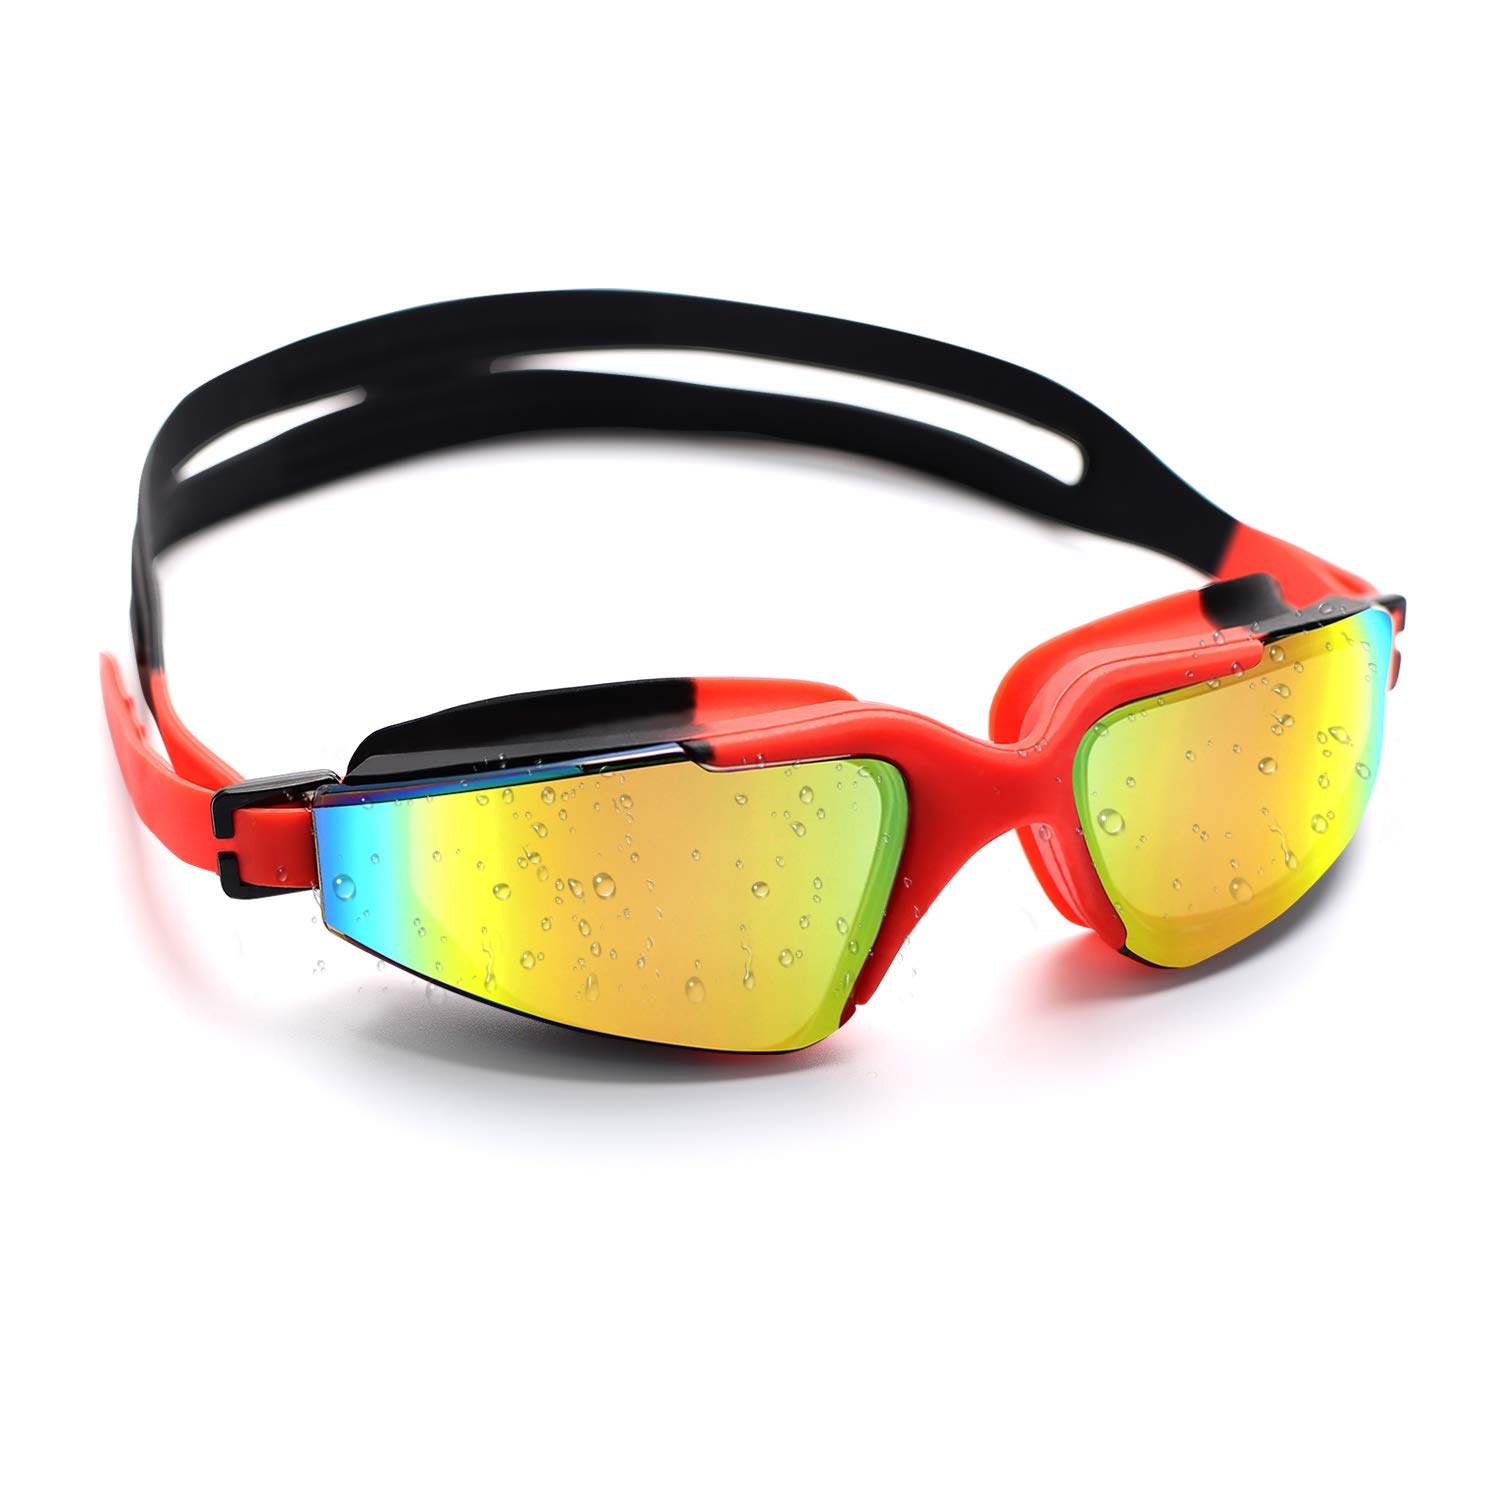 Conthfut Swim/Goggles/for/Kids Swimming Goggles Professional Anti Fog No Leaking UV Protection Wide View Swim Glasses for Youth Women Kids